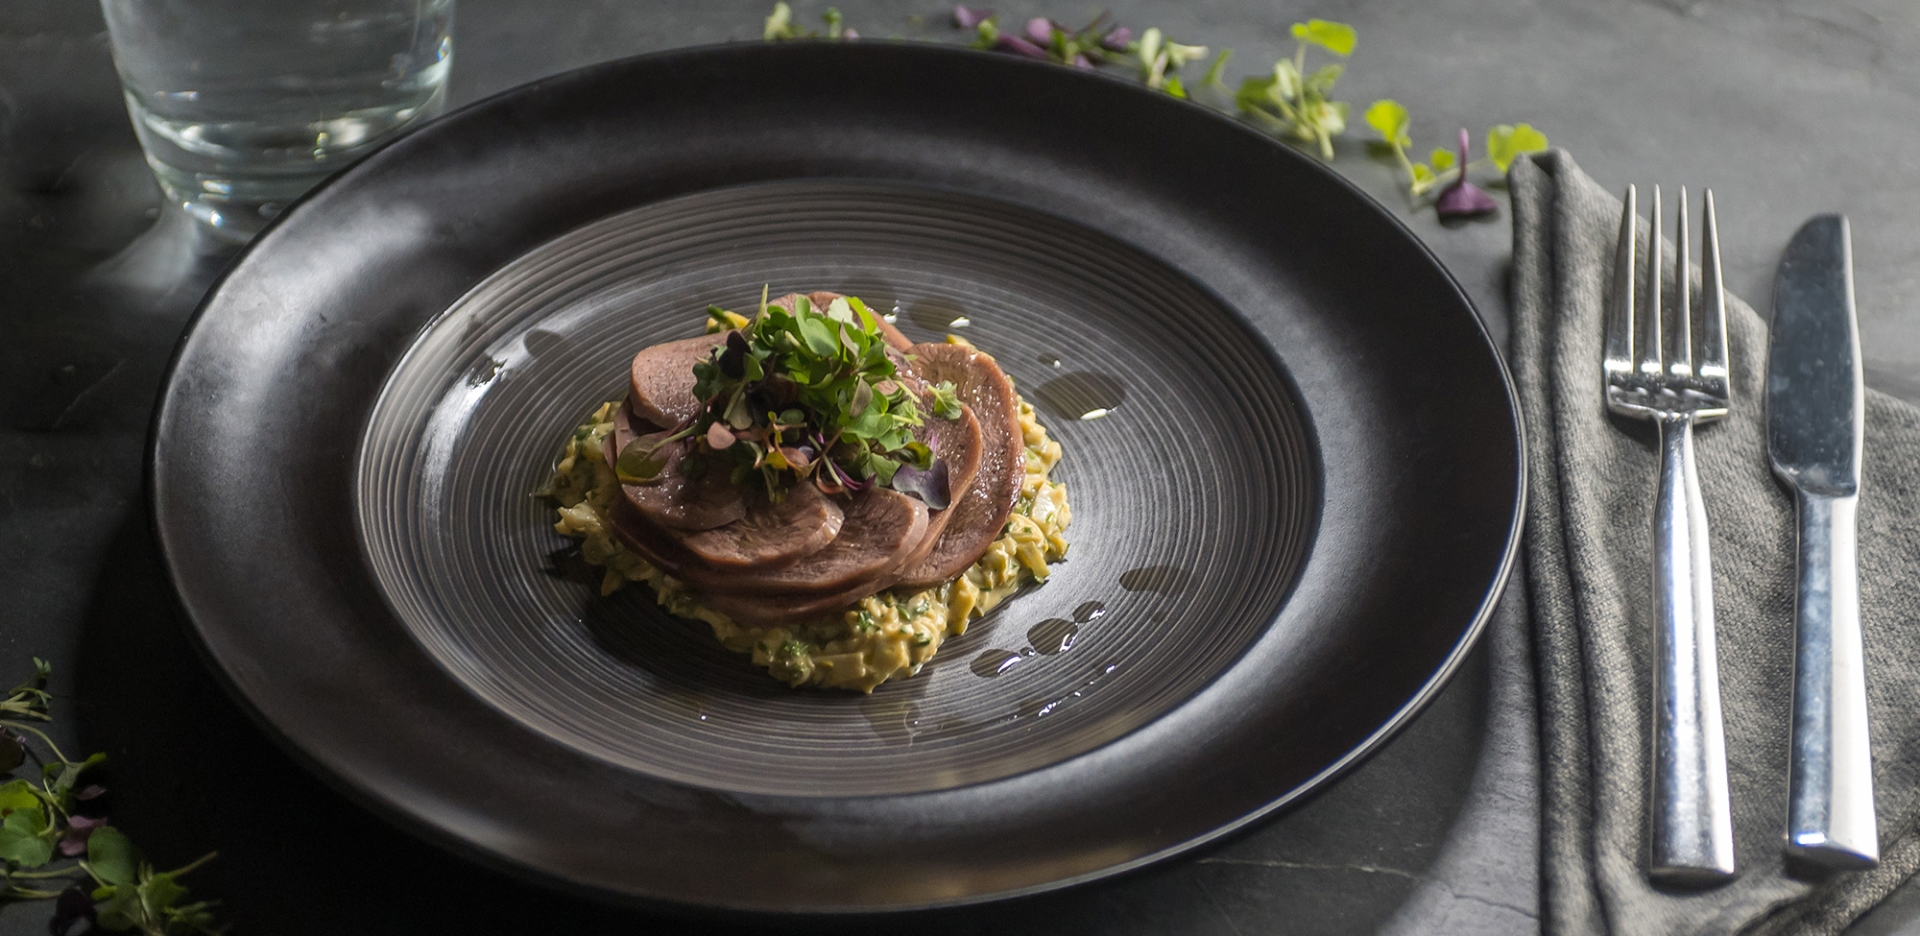 Braised Ox Tongue with Sauce Gribiche